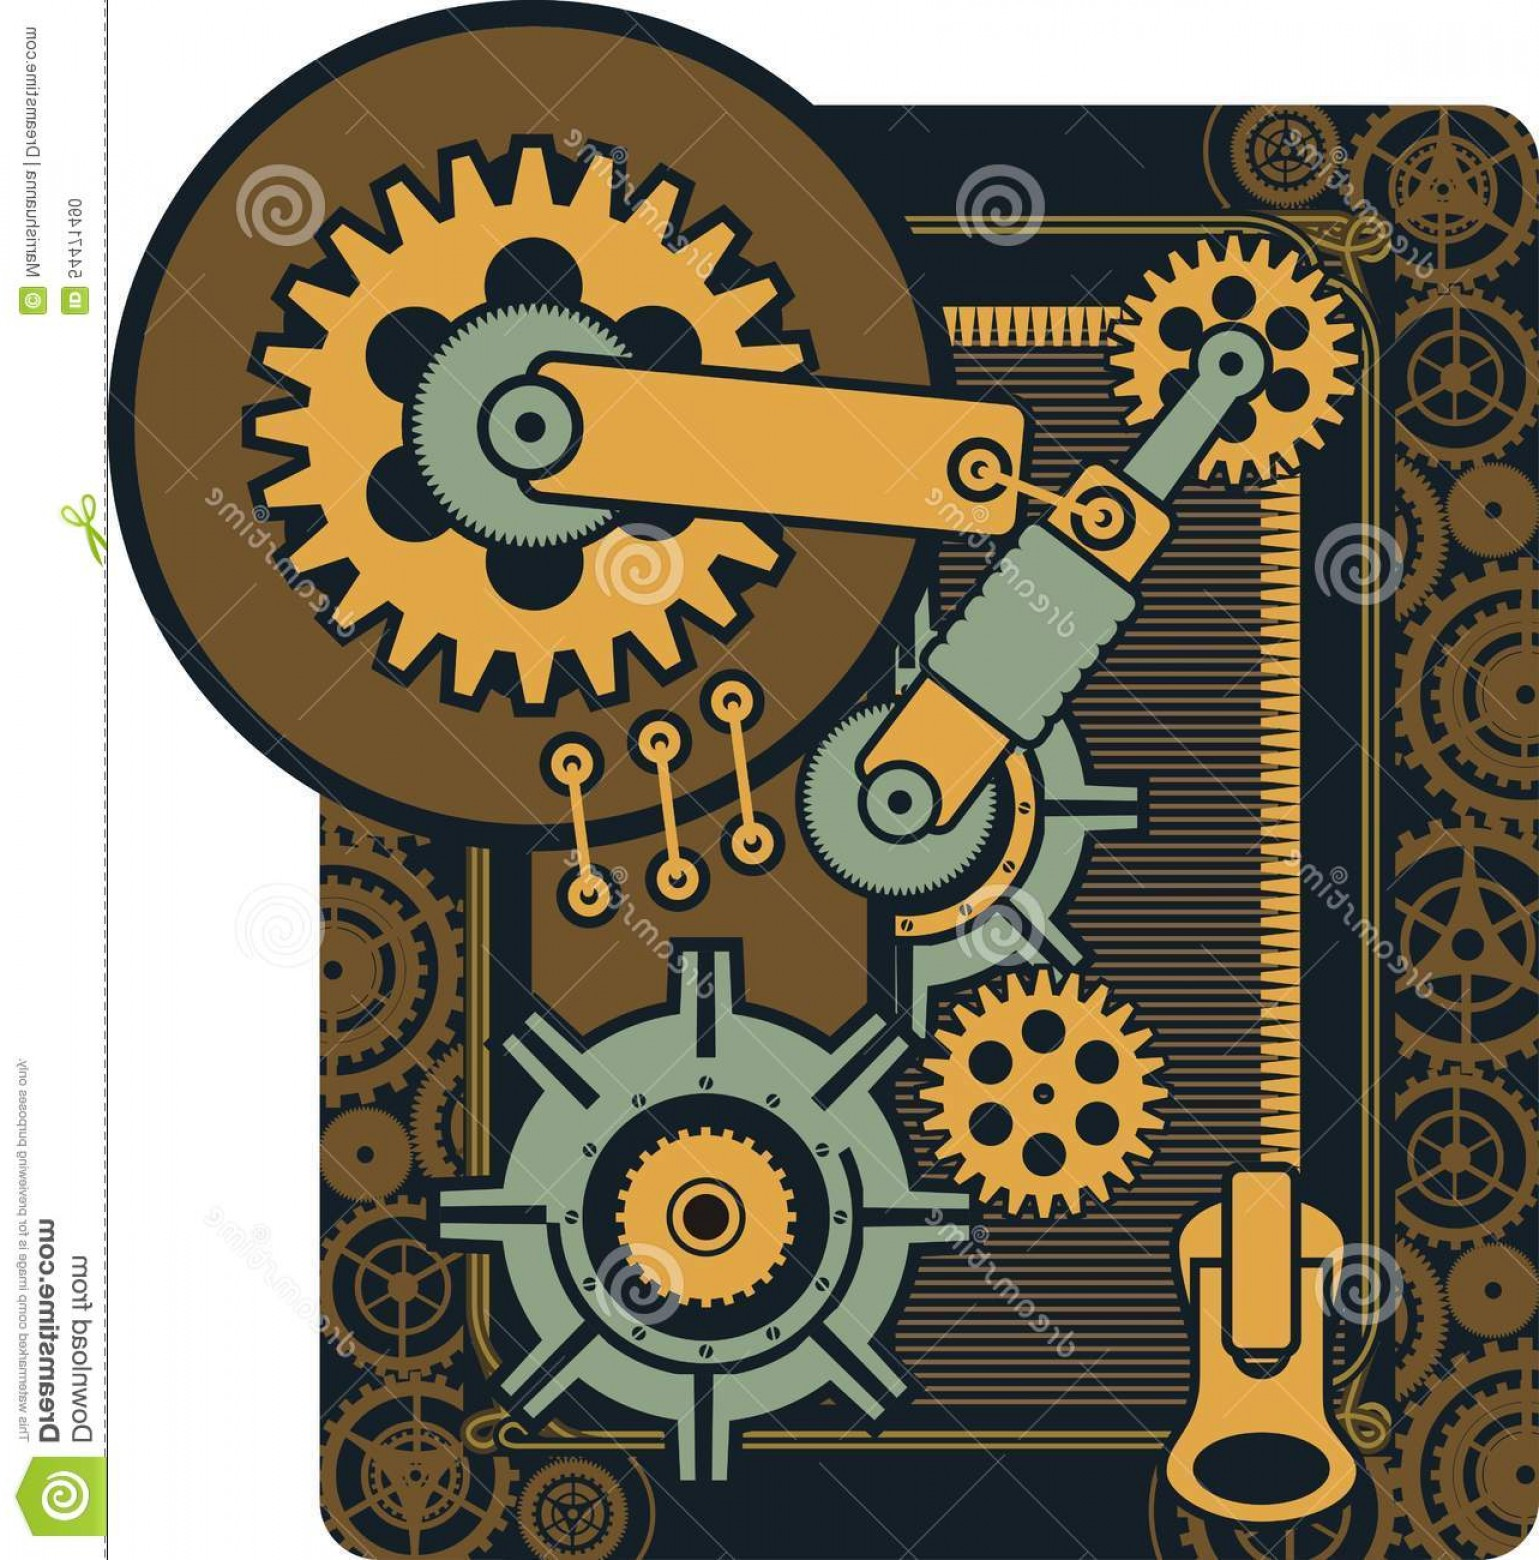 Vector Mechanical Clock Wheels: Stock Illustration Steampunk Mechanism Vector Mechanical Elements Rotating Parts Rectangular Shape Image